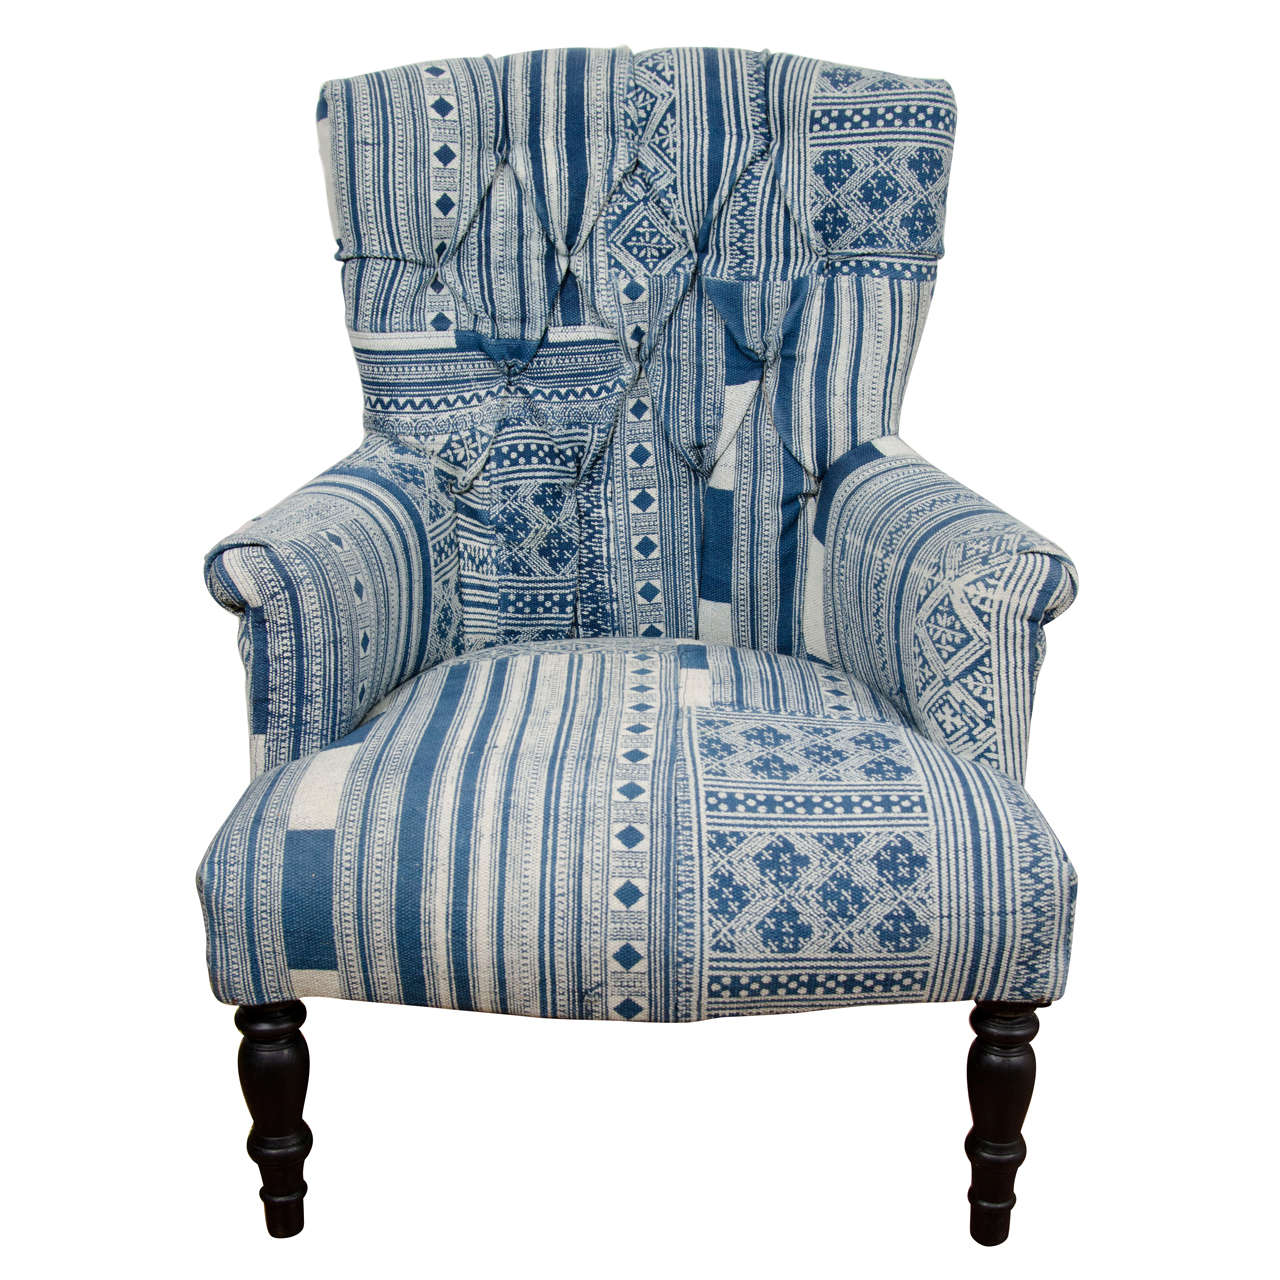 Superb img of Indian Wood Blue and White Dhurrie Upholstered Arm Chair at 1stdibs with #274765 color and 1280x1280 pixels